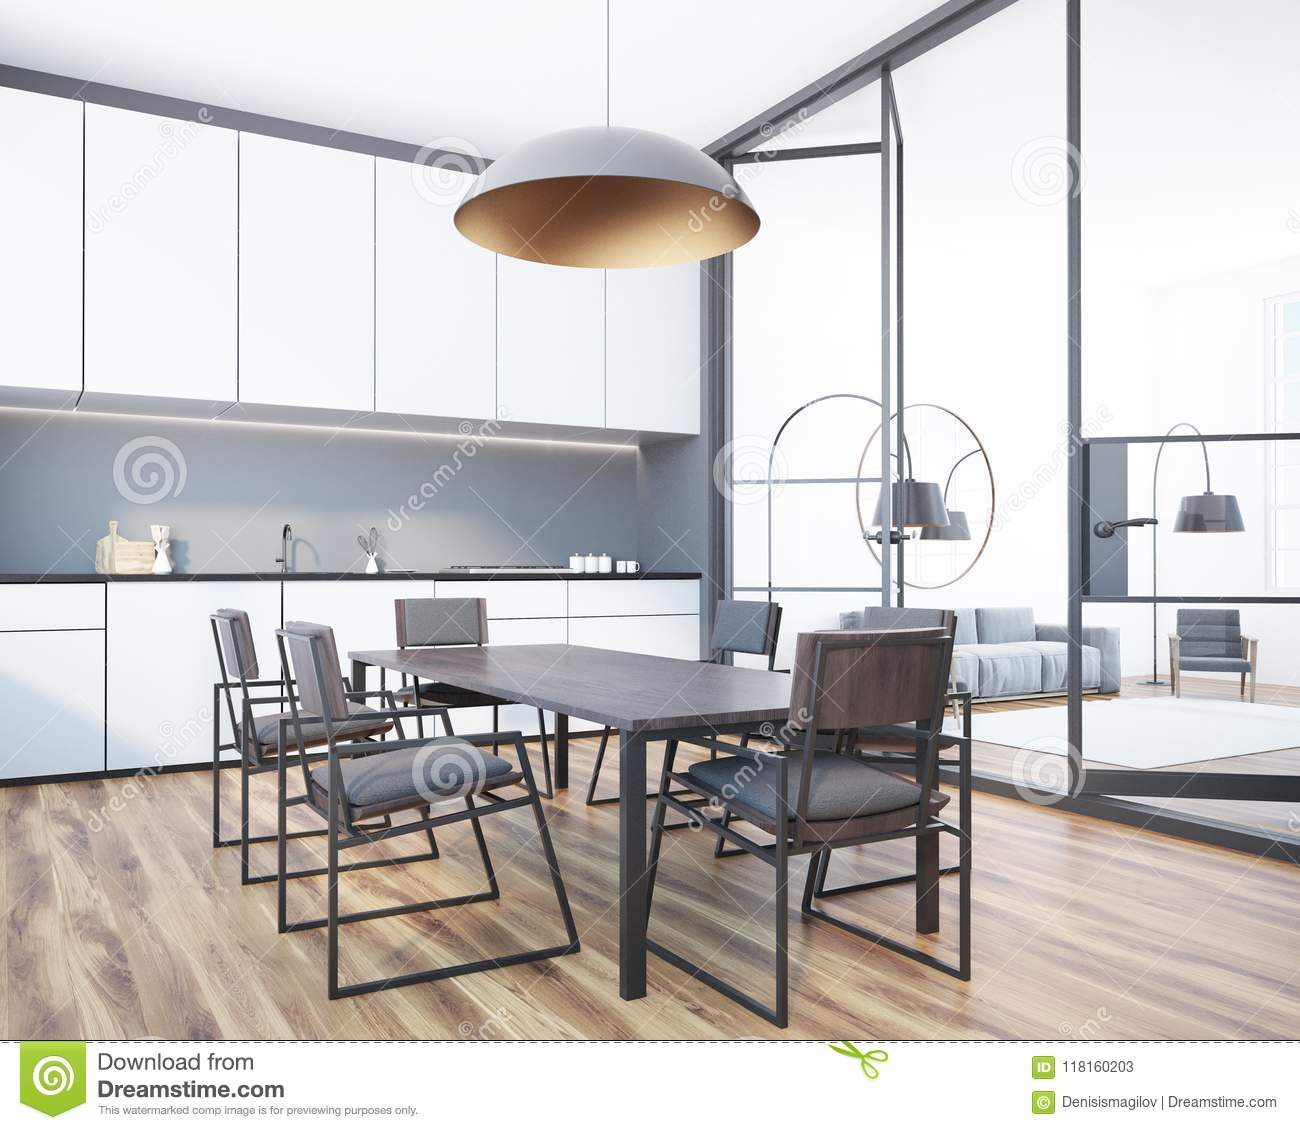 Gray Dining Room Corner With A Long Table Chairs Standing Near White Kitchen Countertops Glass Doors Living To The Right